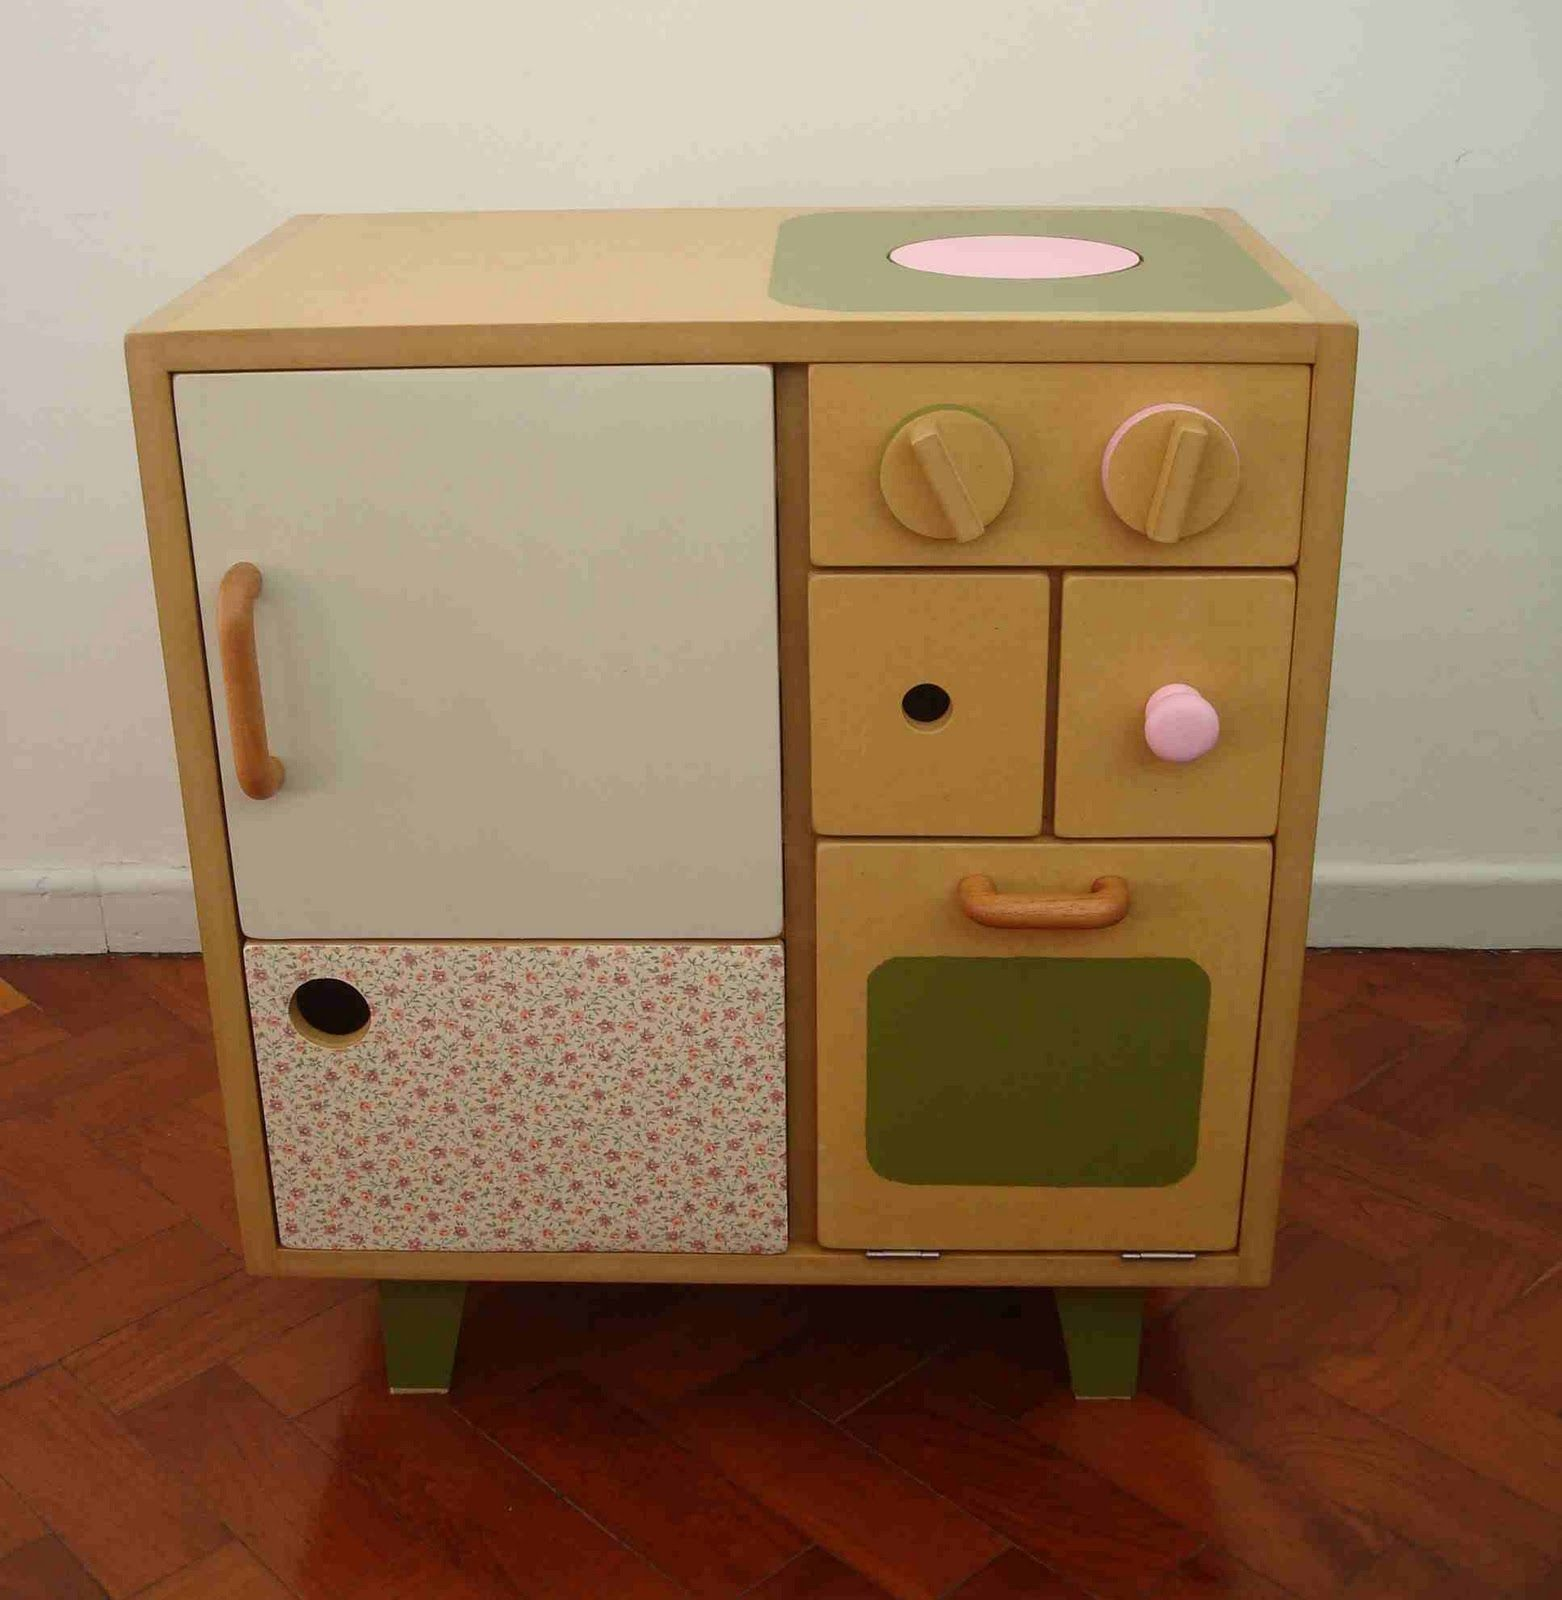 Jota Muebles Ninos - Kitchen Play By Jota Juguetes Ni Os Pinterest Juguetes [mjhdah]https://s-media-cache-ak0.pinimg.com/originals/7d/29/e7/7d29e794a6b17ac9f38af01a5fb53619.jpg